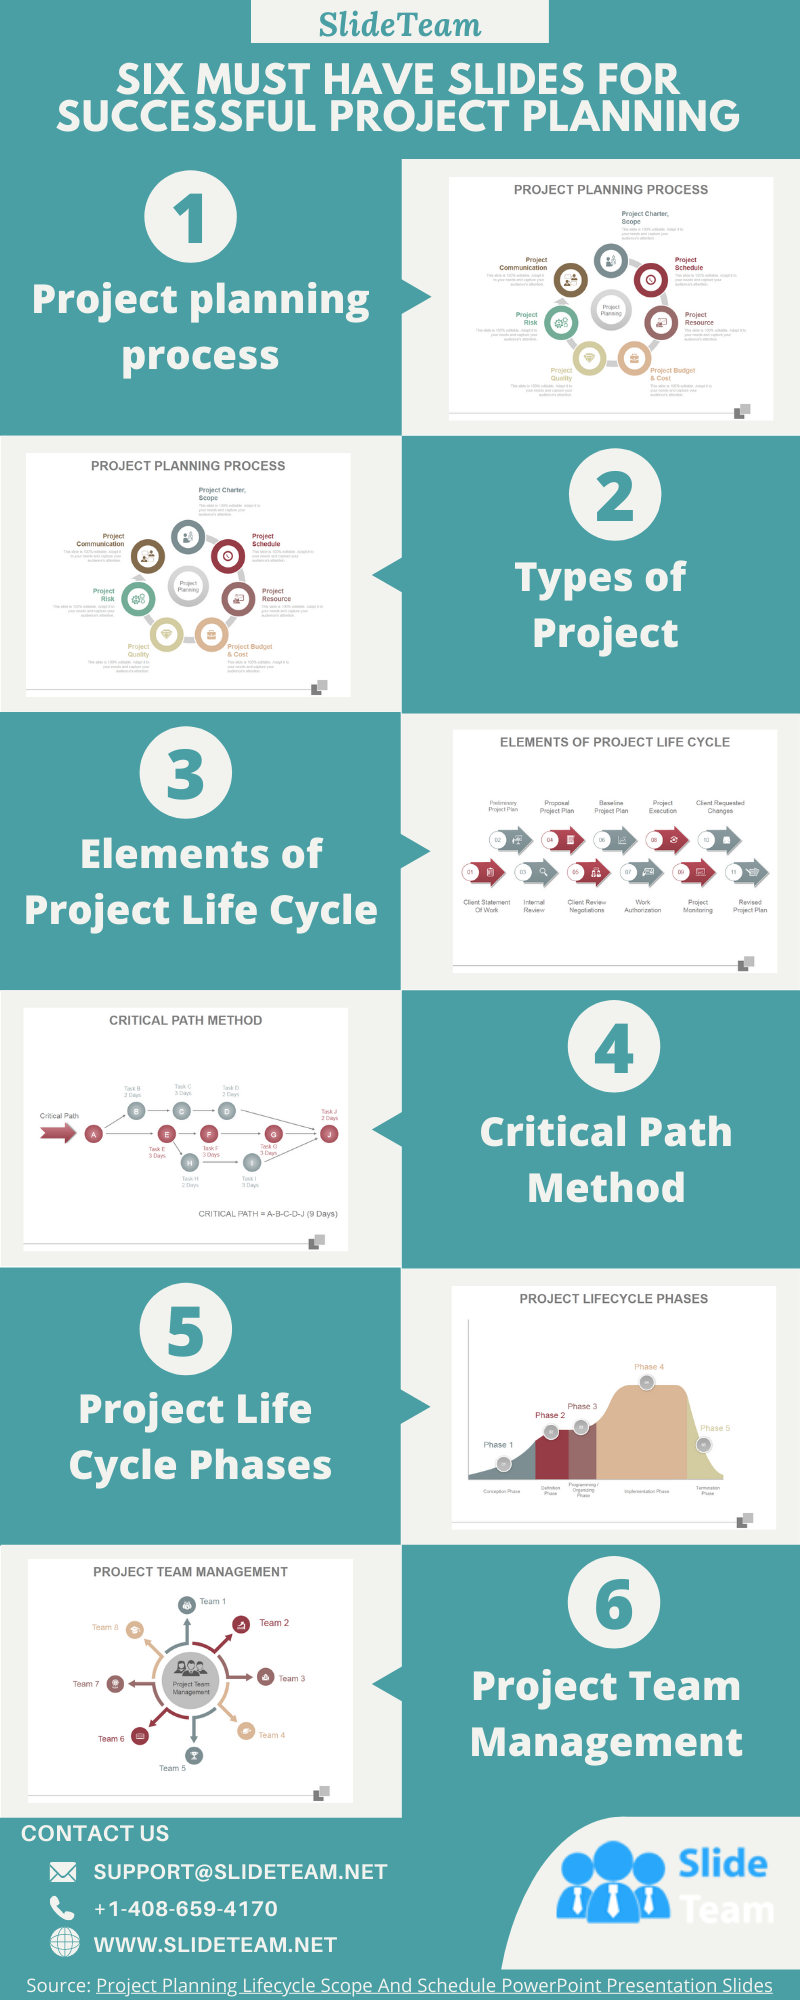 Six Must Have Slides For Successful Project Planning #infographic